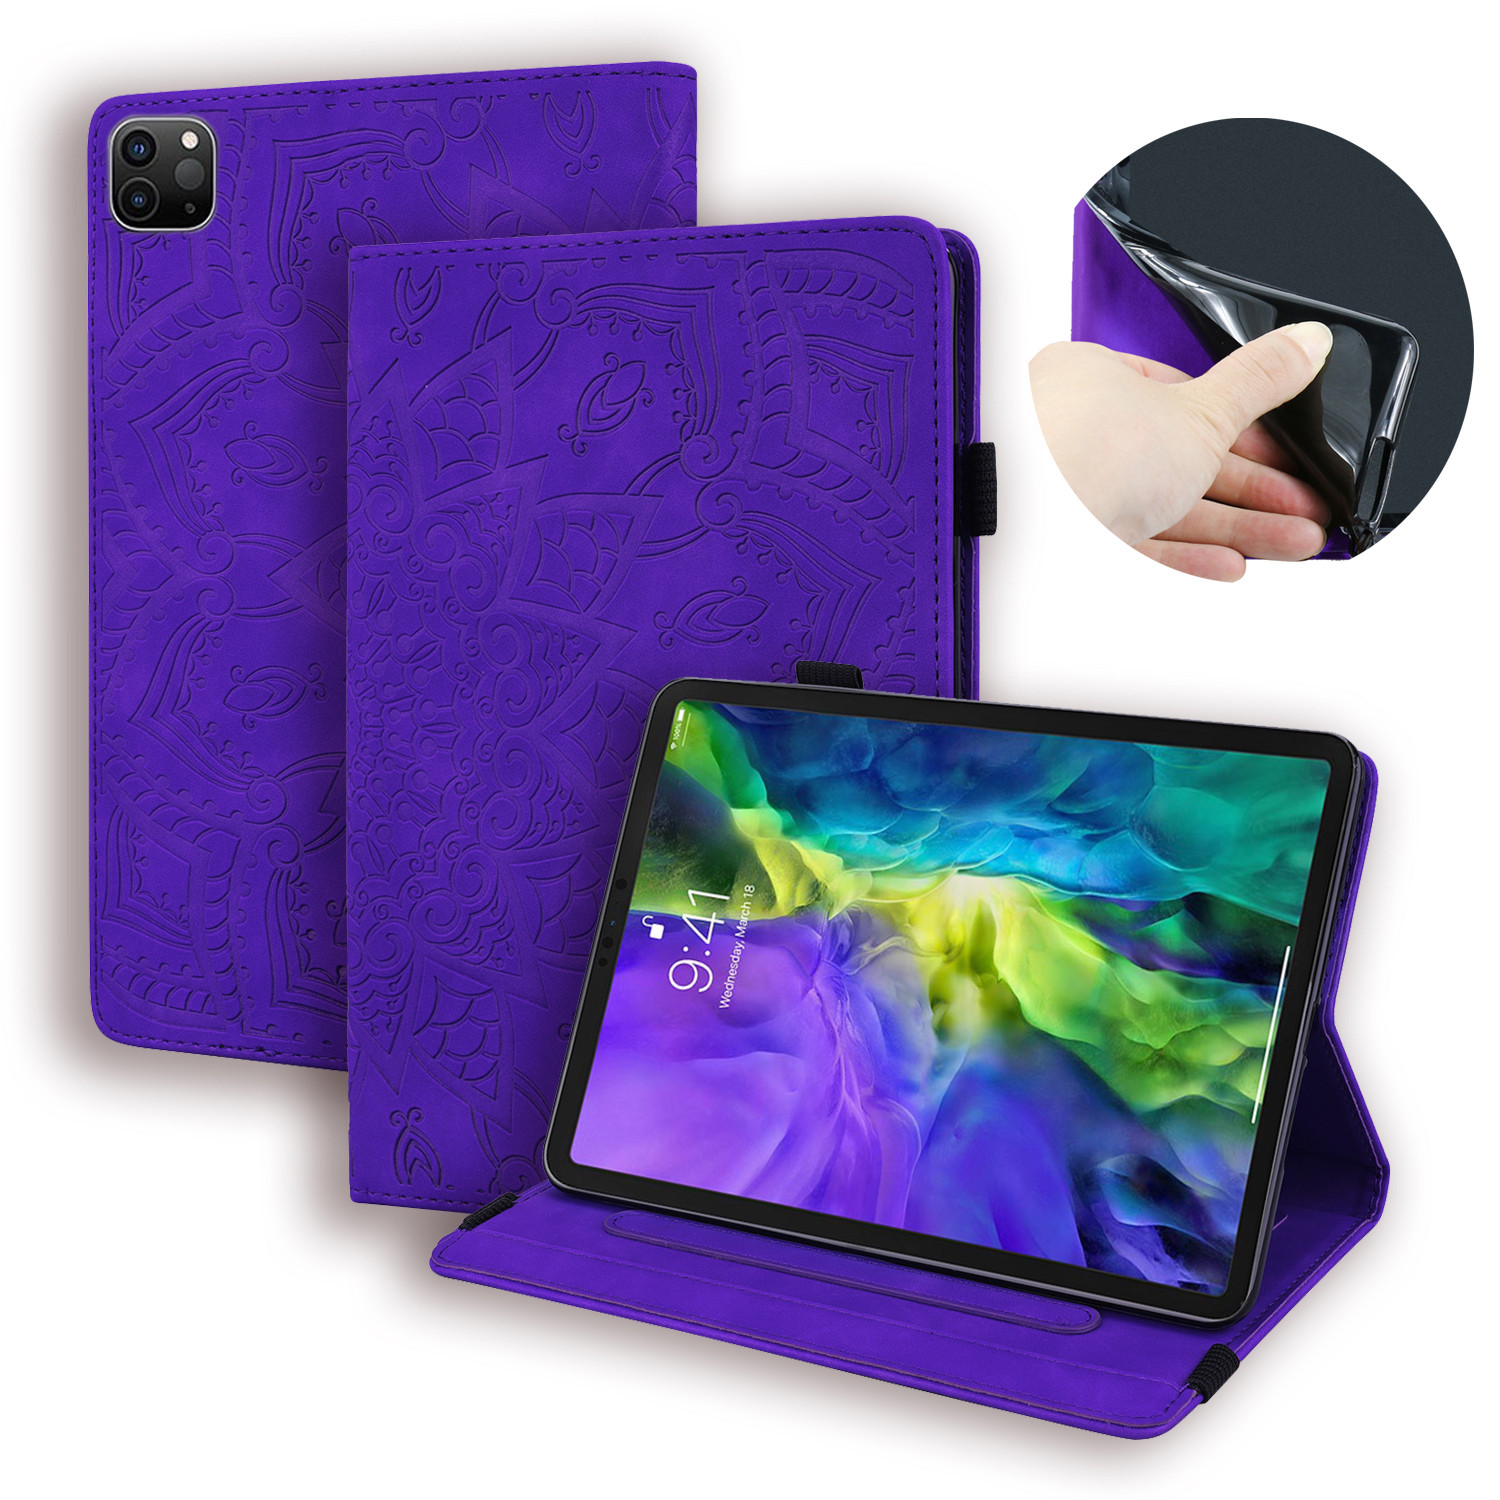 5 Khaki For iPad Pro 2020 Case 12 9 3D Embossed Flower 4th Generation Folding Leather Cover for